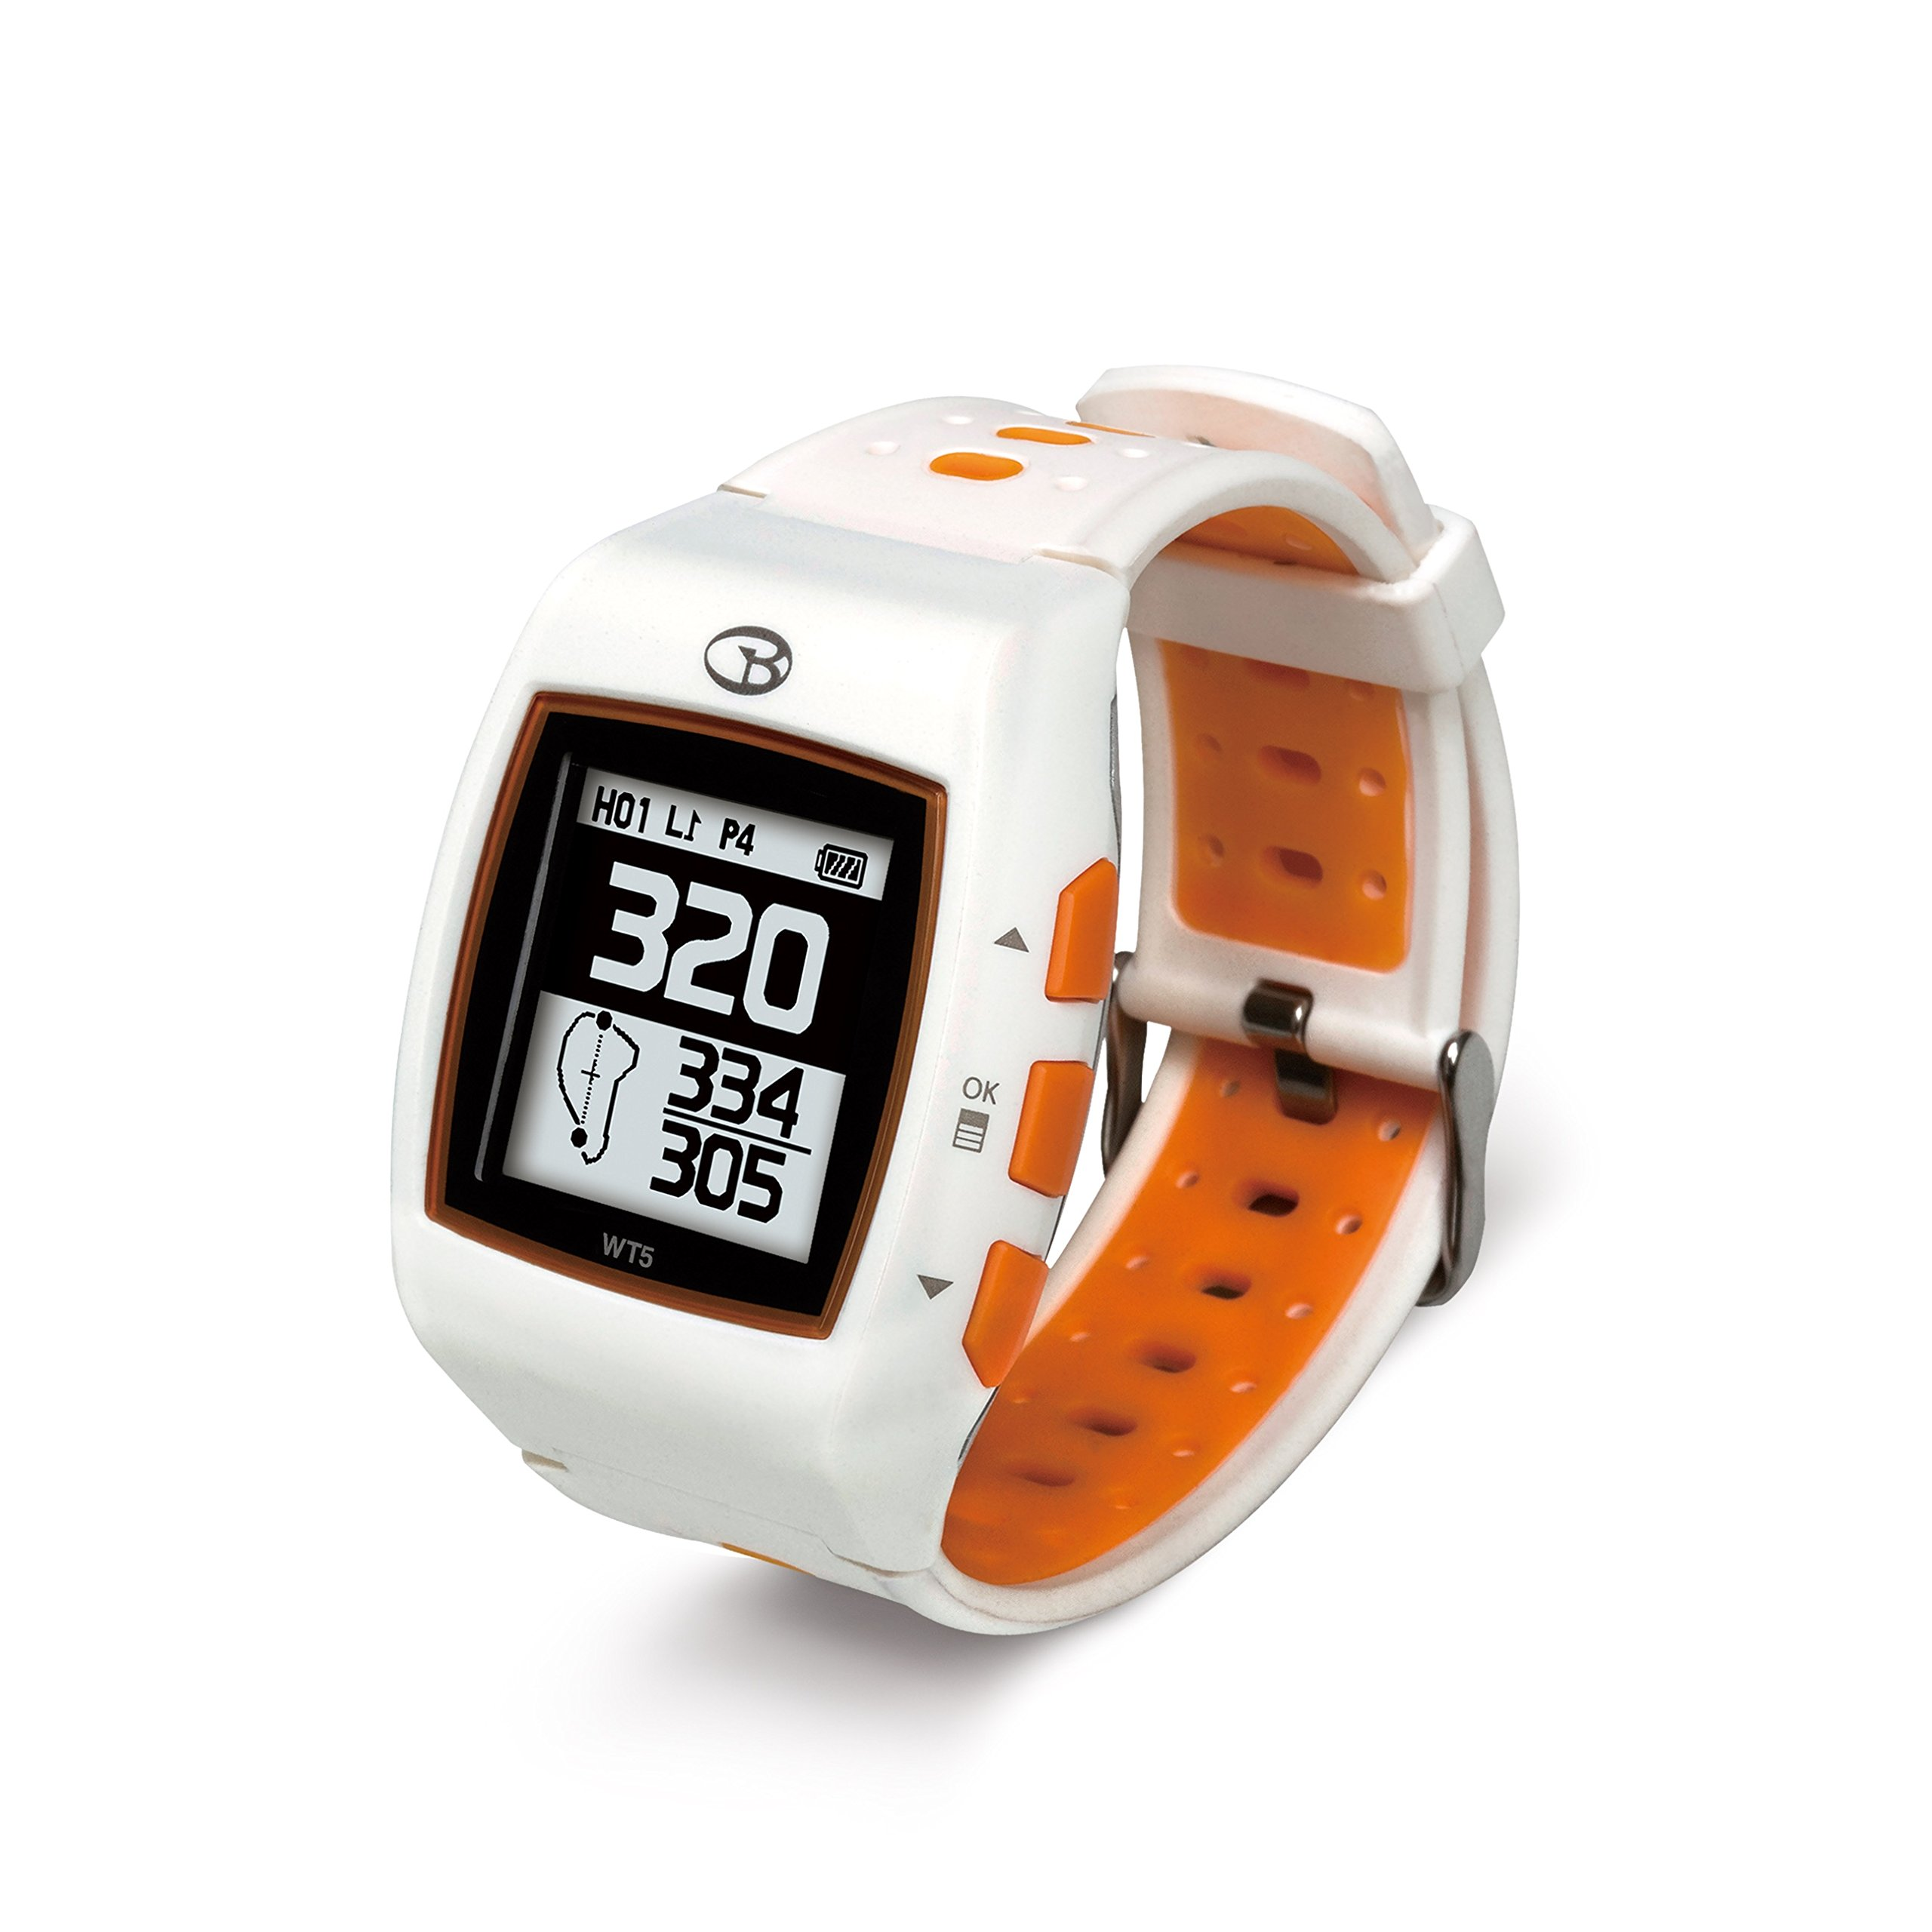 Golf Buddy WT5 Golf GPS Watch, White/Orange